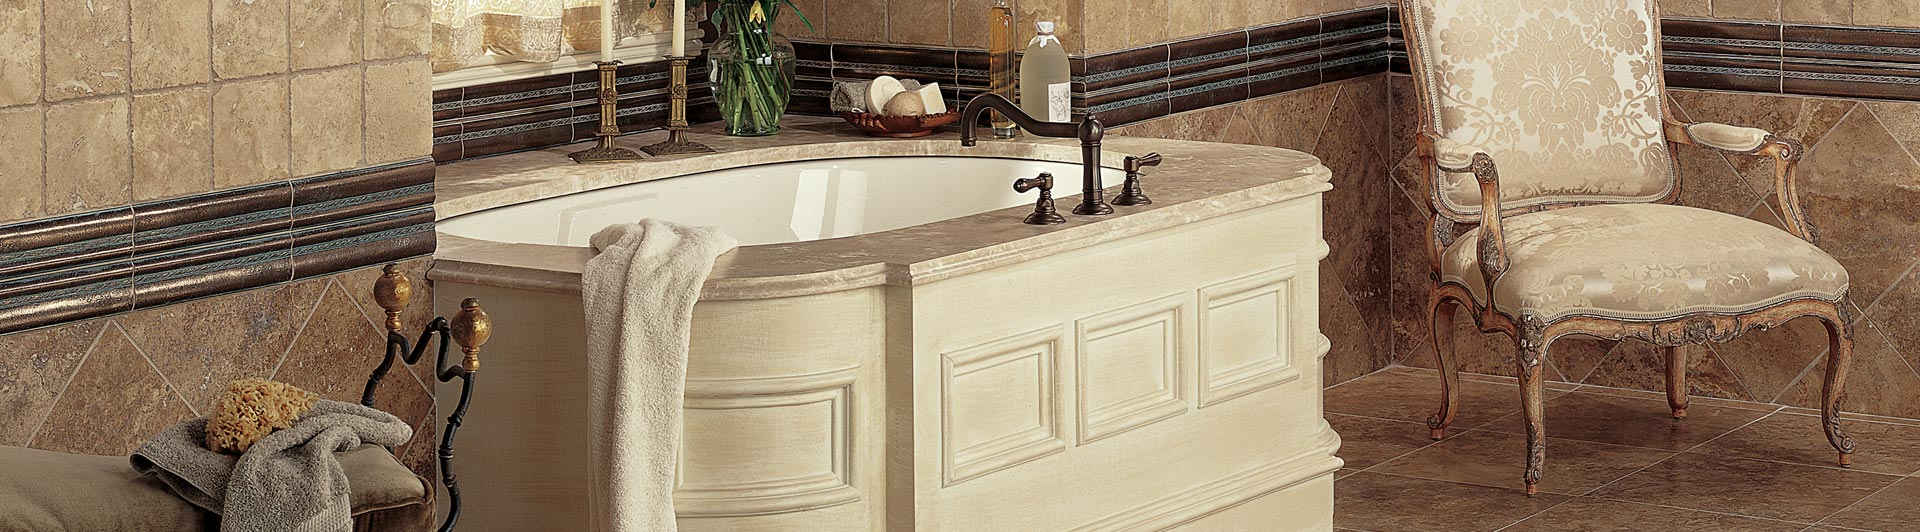 Ceramic and Porcelain Tile